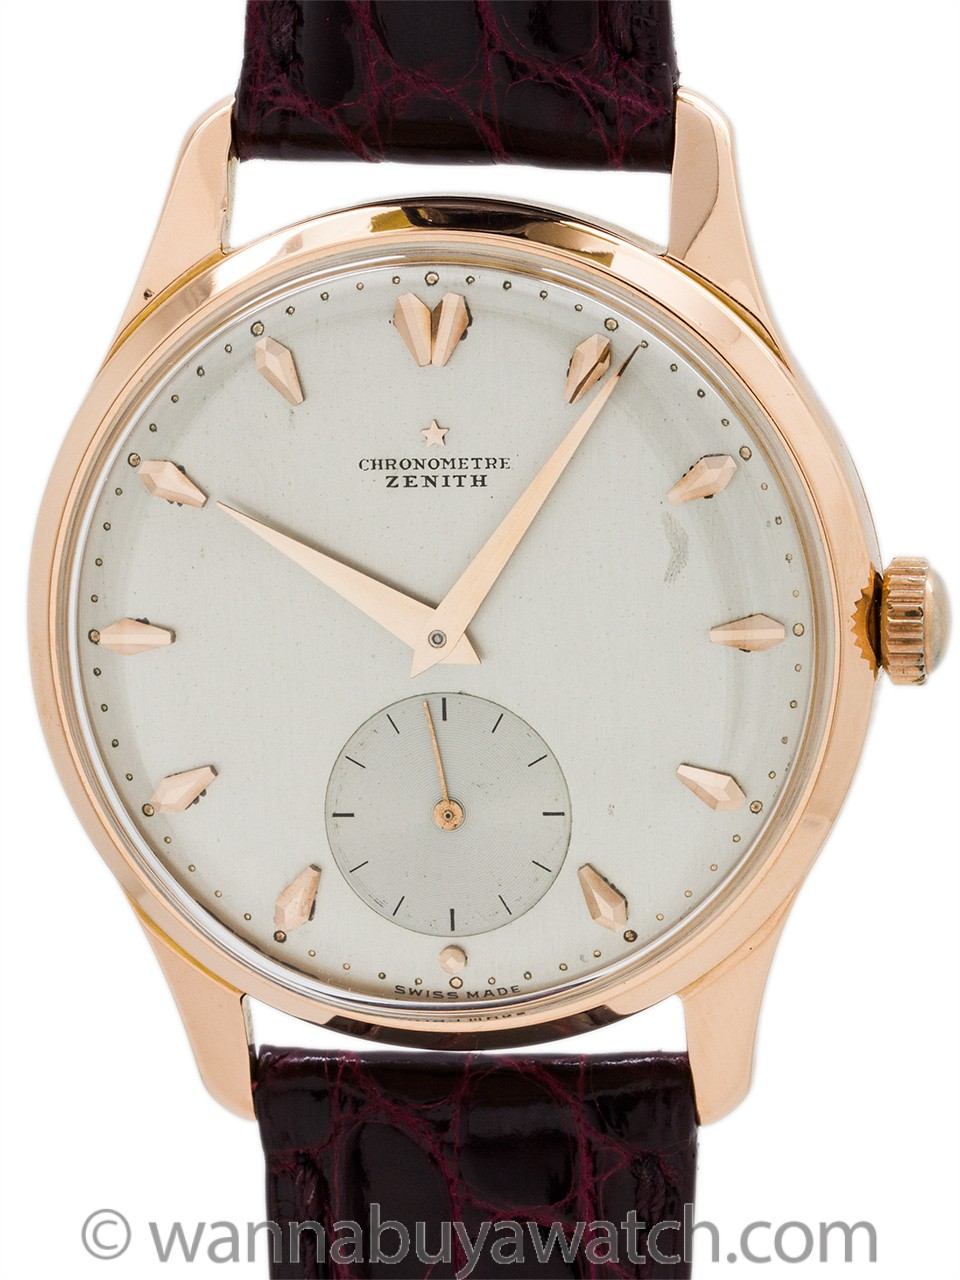 Zenith Chronometer Caliber 135 18K Rose Gold circa 1956 RARE!